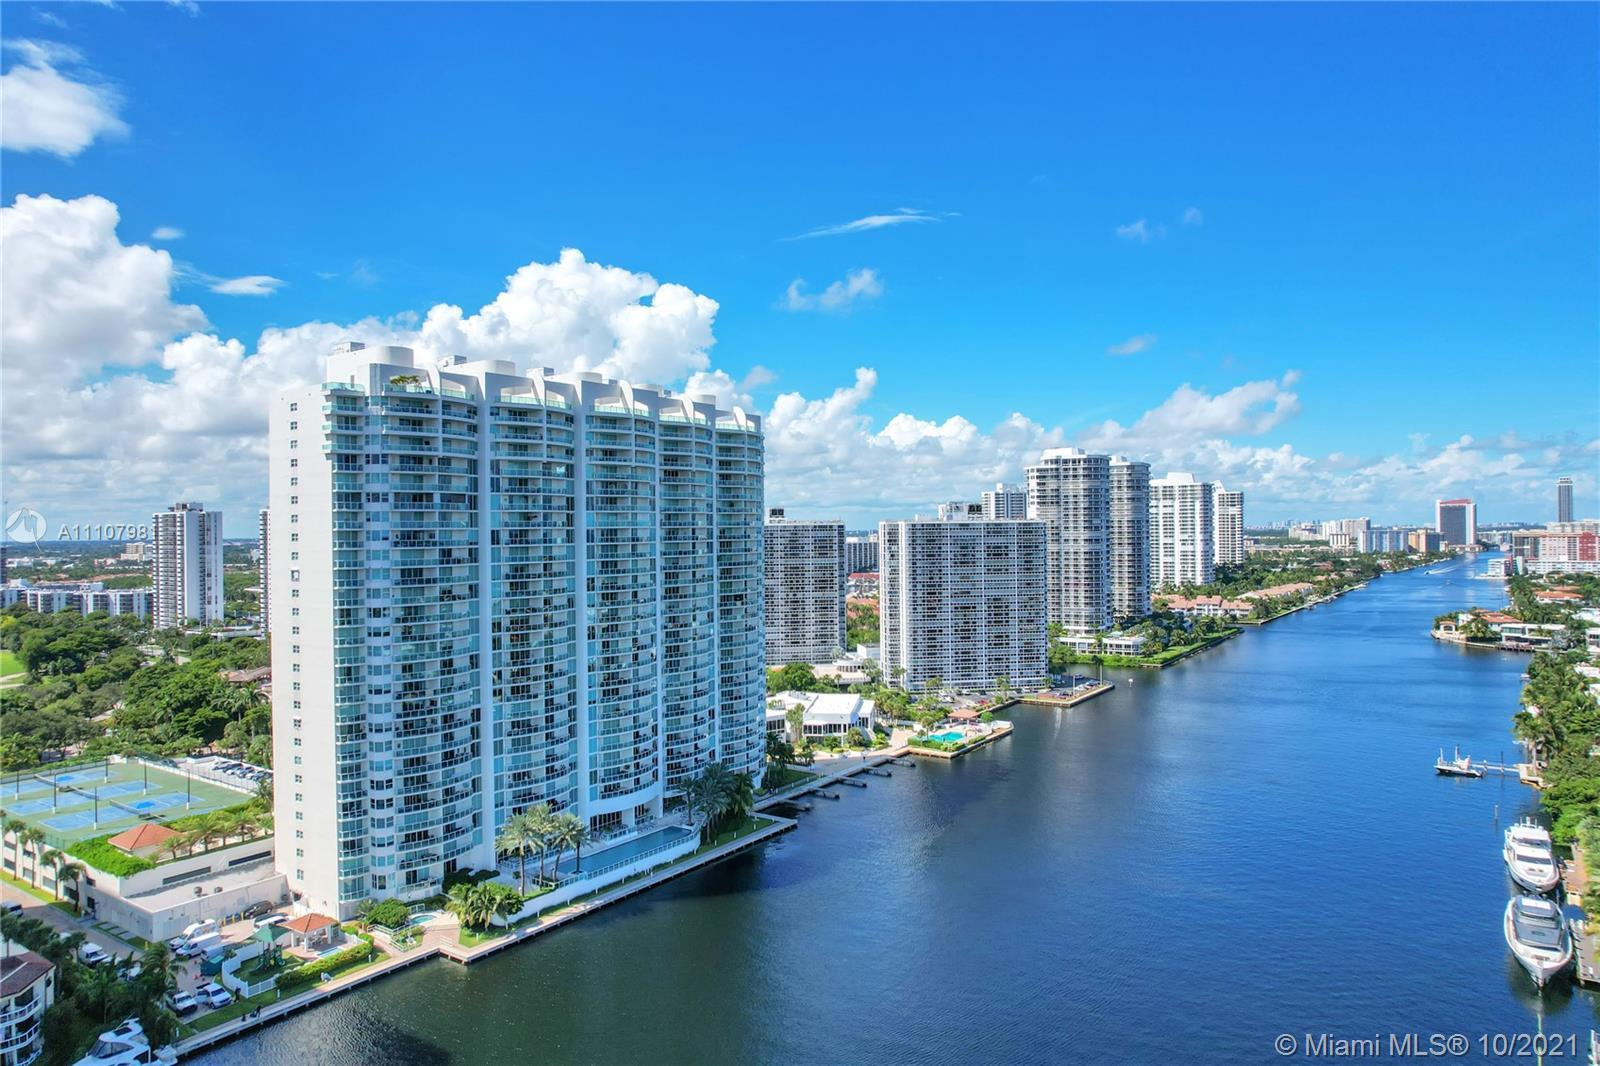 LOCATION, LOCATION, LOCATION. East of Country club Drive in Aventura. Unobstructed Ocean View. 6,00